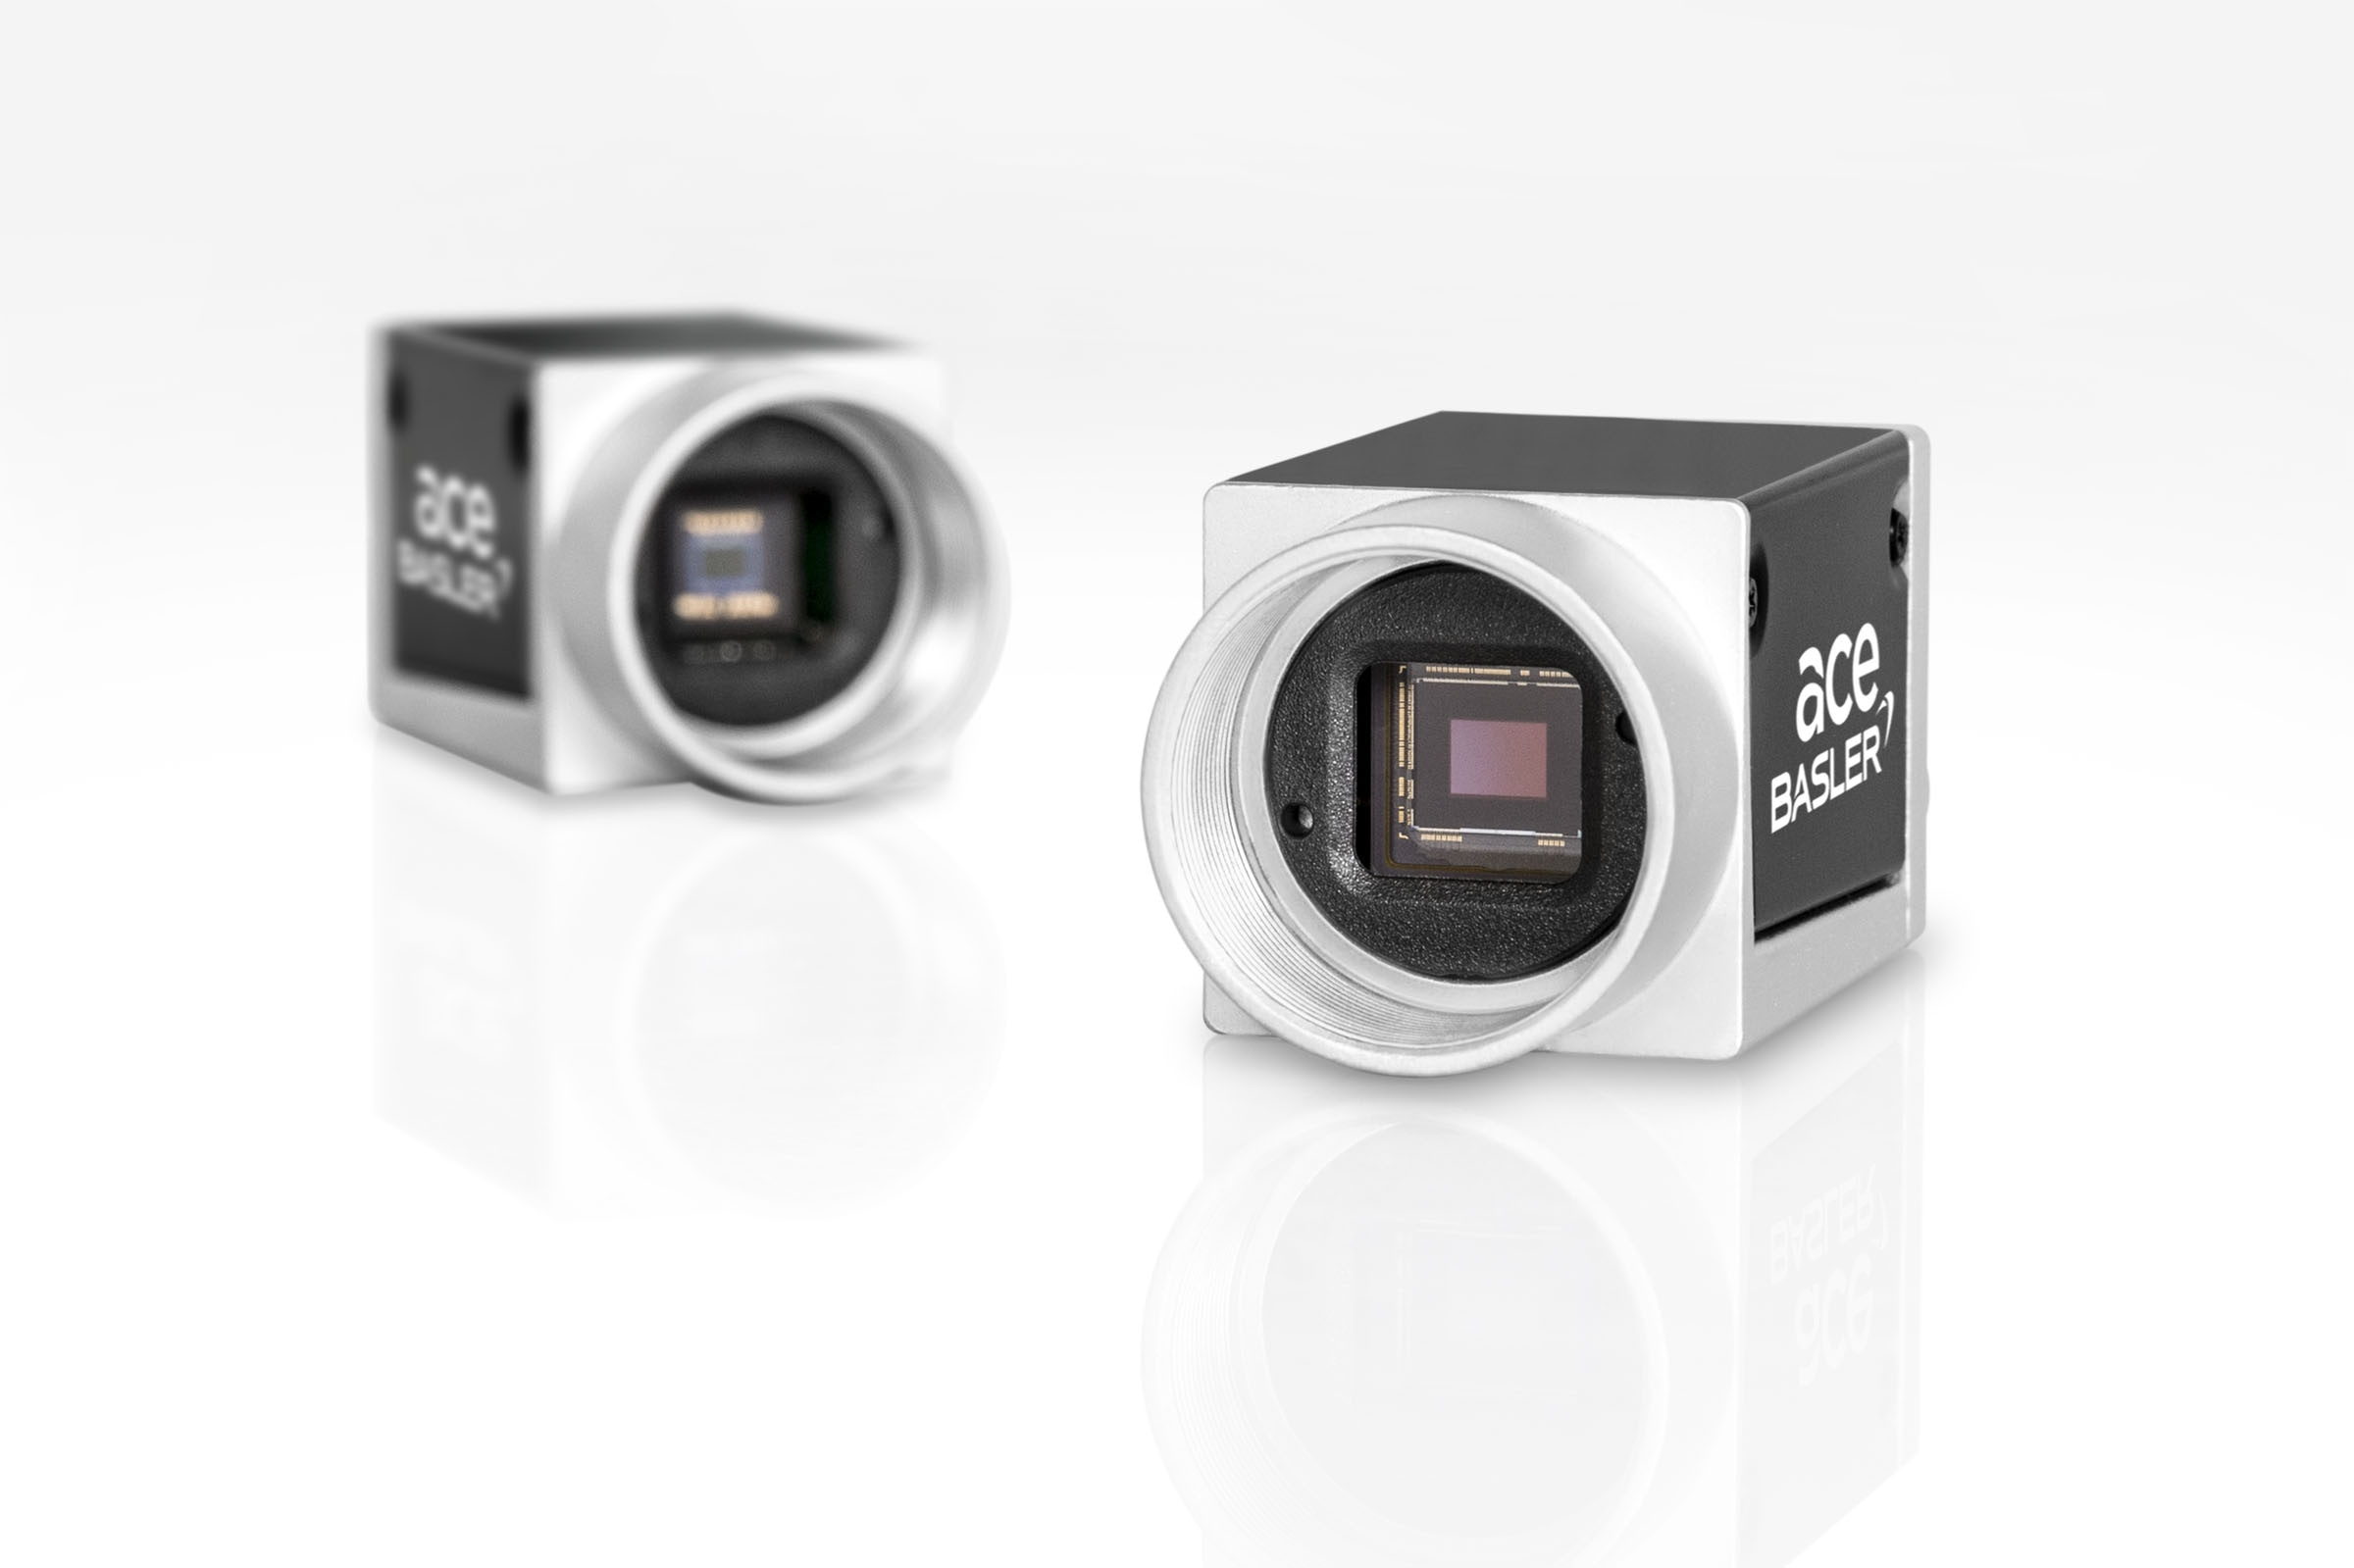 Unique in the Market: Basler Presents 1:1 Replacement for CCD Cameras Featuring Sony's ICX618 Sensor